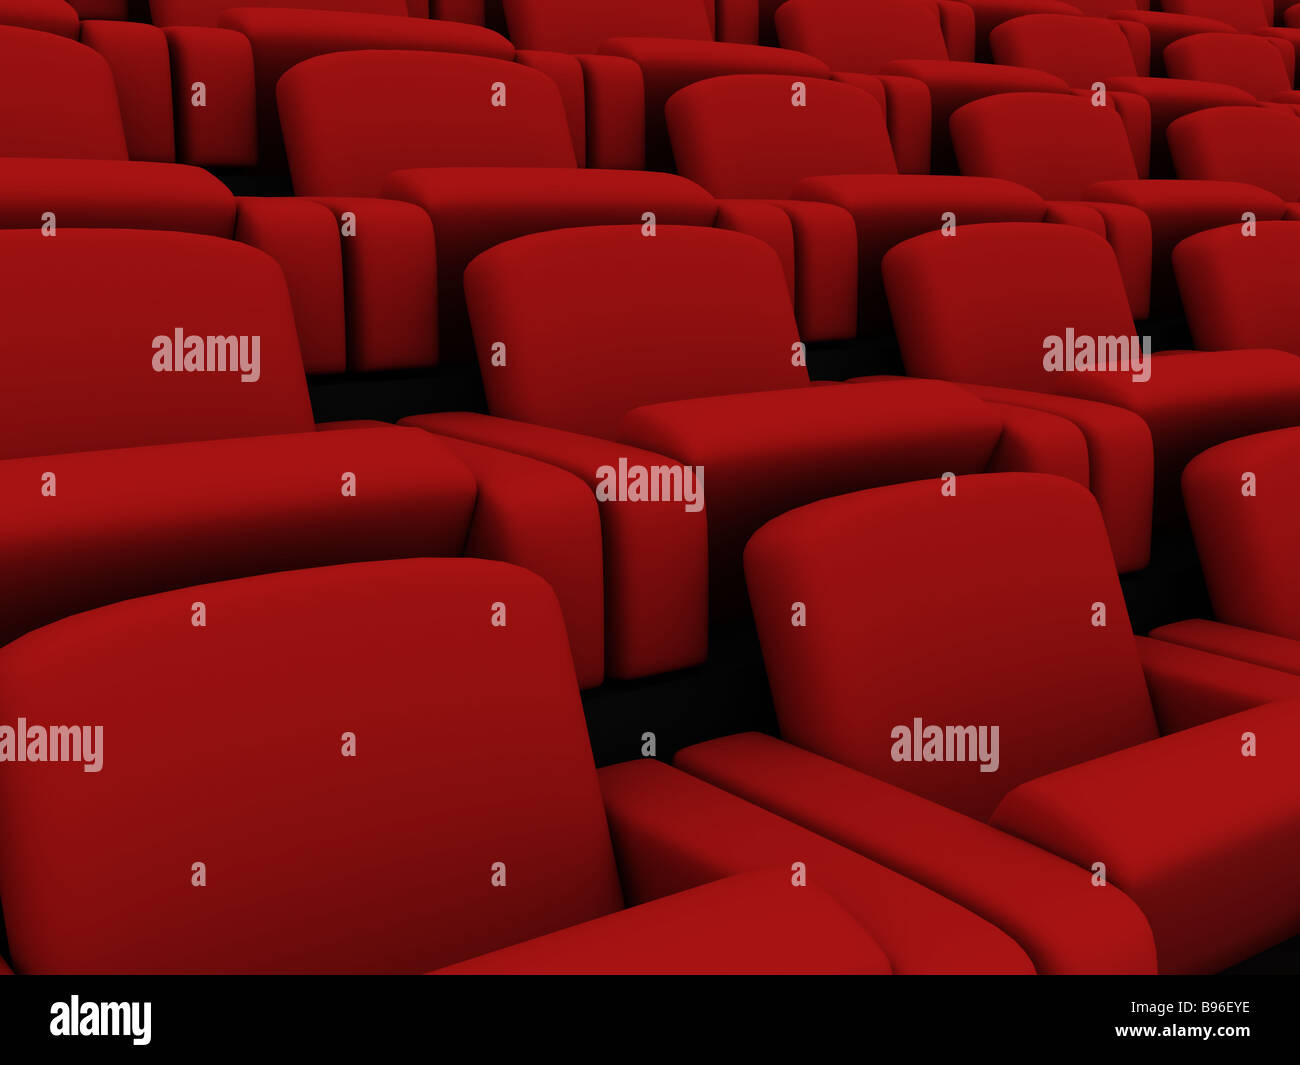 cinema seats - Stock Image